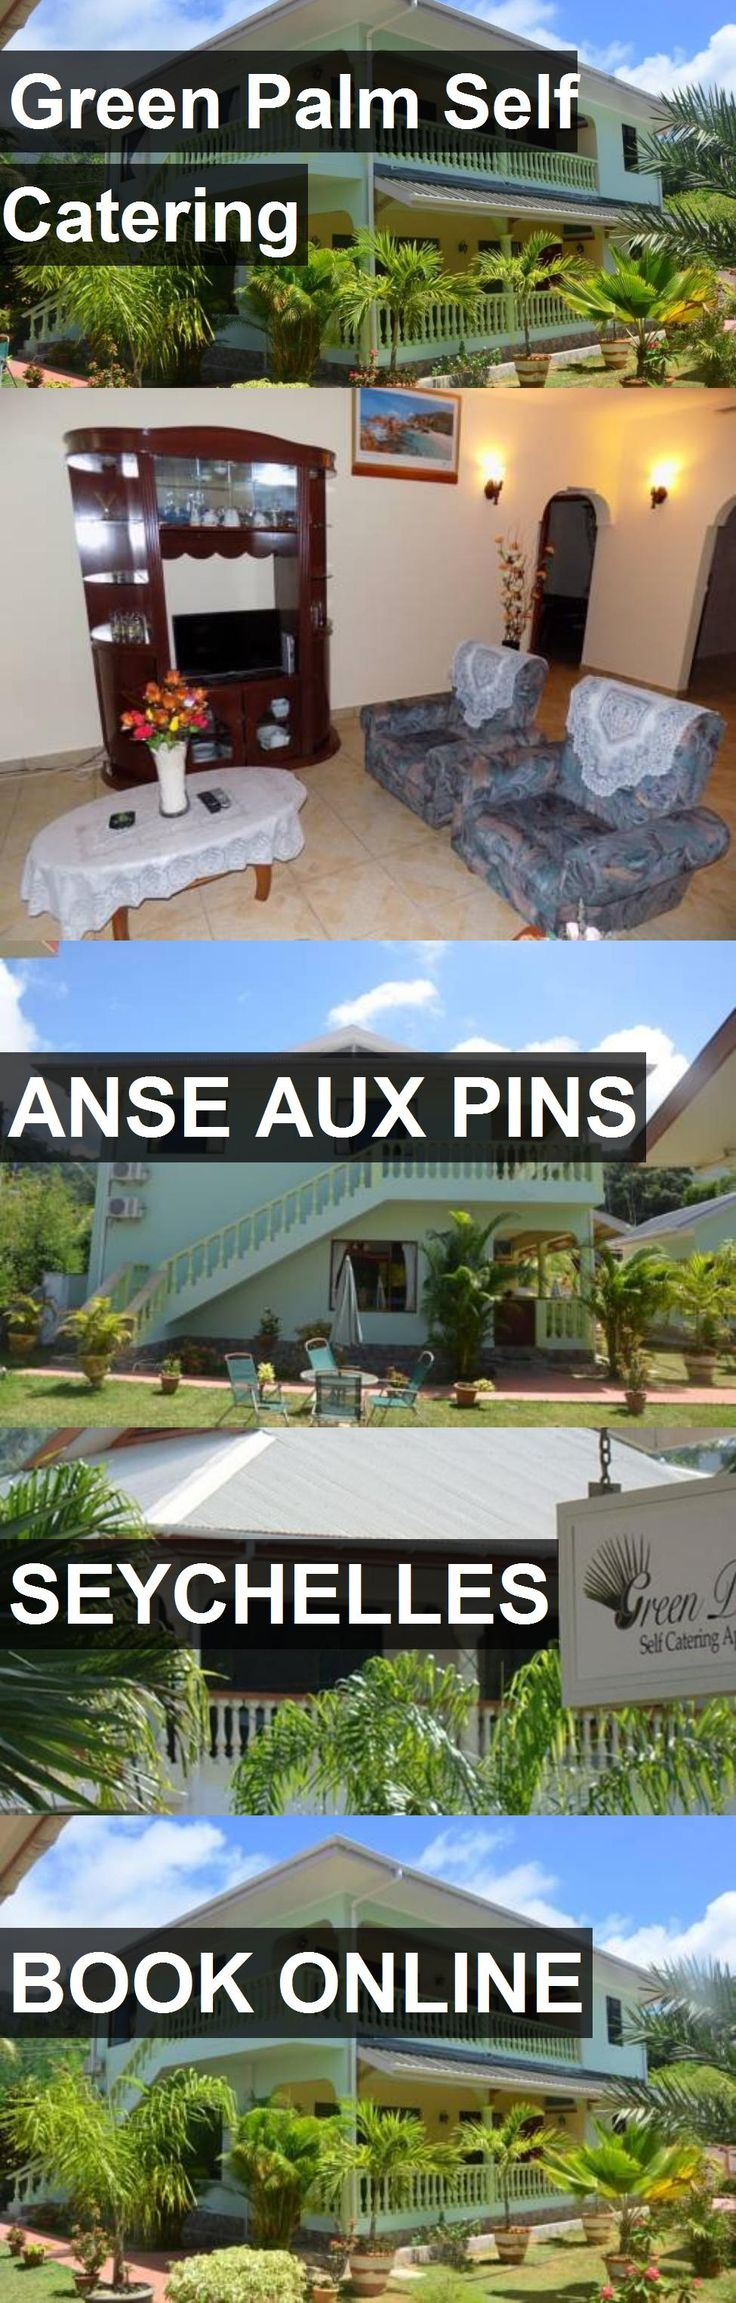 Hotel Green Palm Self Catering in Anse aux Pins, Seychelles. For more information, photos, reviews and best prices please follow the link. #Seychelles #AnseauxPins #GreenPalmSelfCatering #hotel #travel #vacation